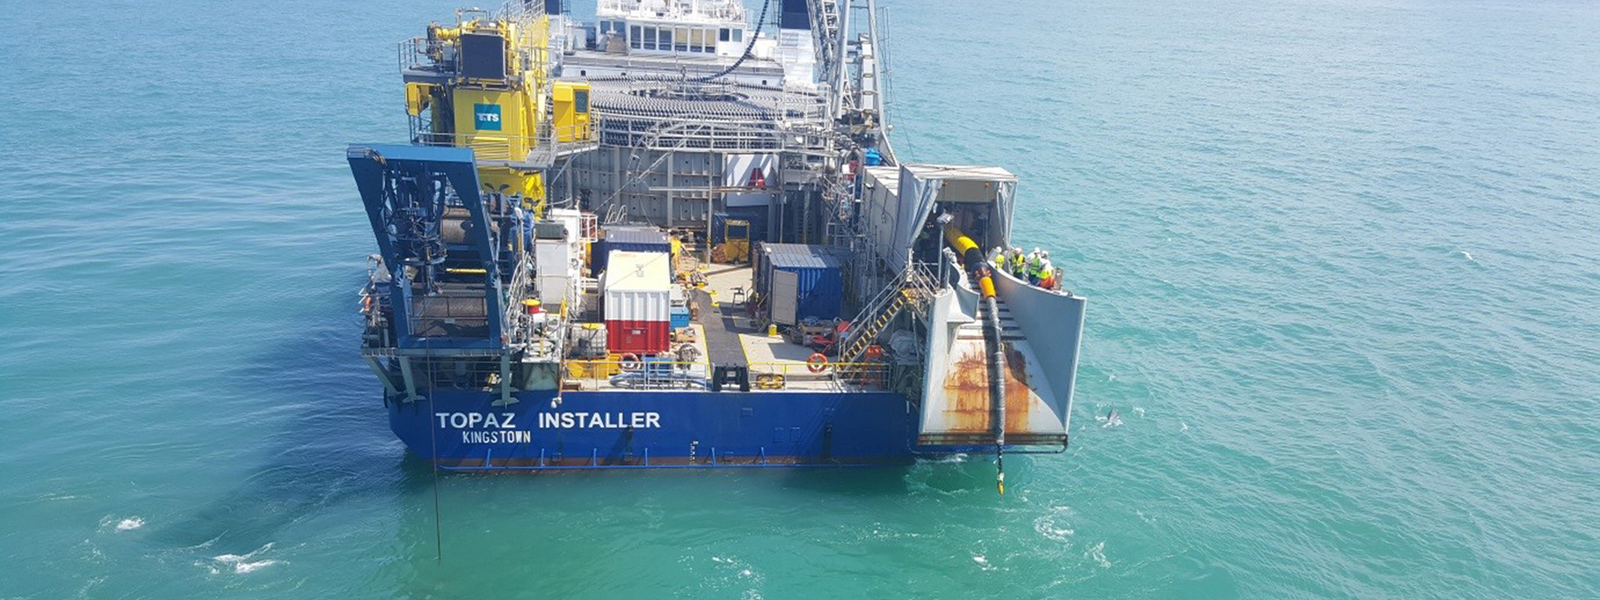 HV Offshore Horns Rev 3 project cable laying